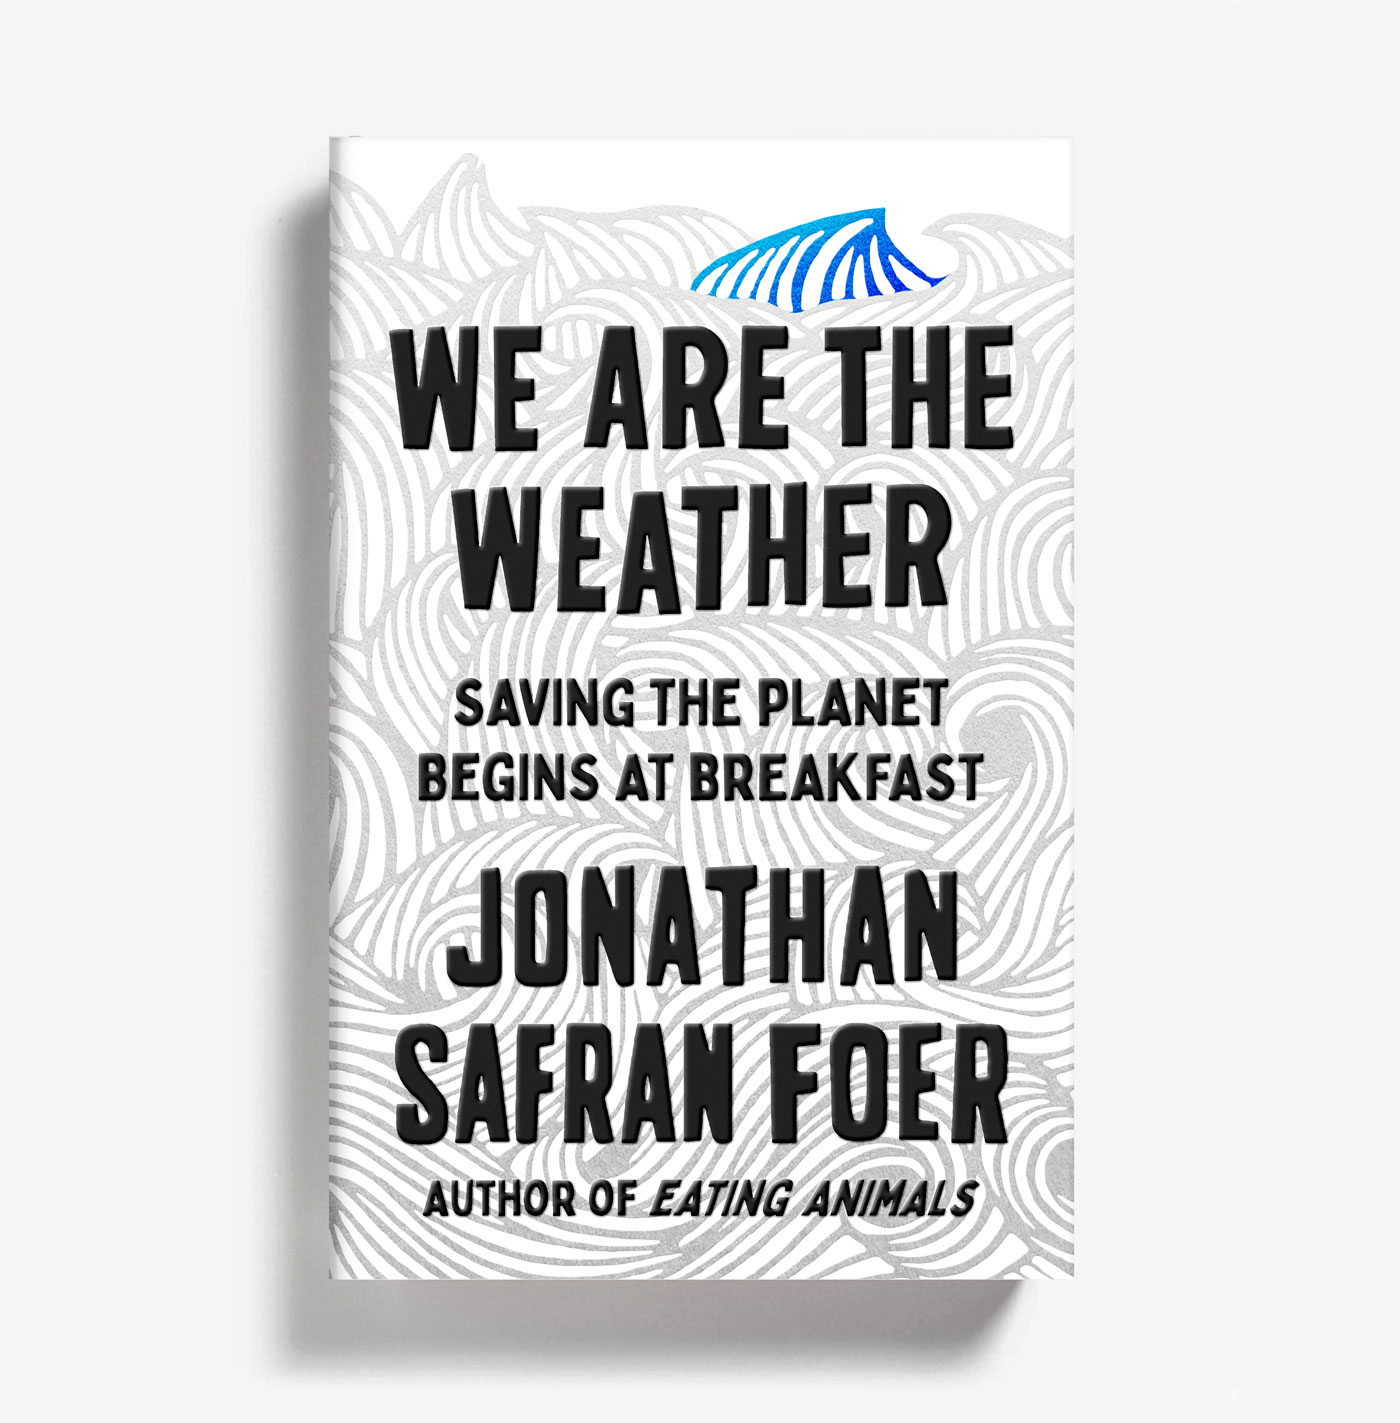 We Are the Weather: Saving the Planet Begins at Breakfast written by Eating Animals creator Jonathan Safran Foer